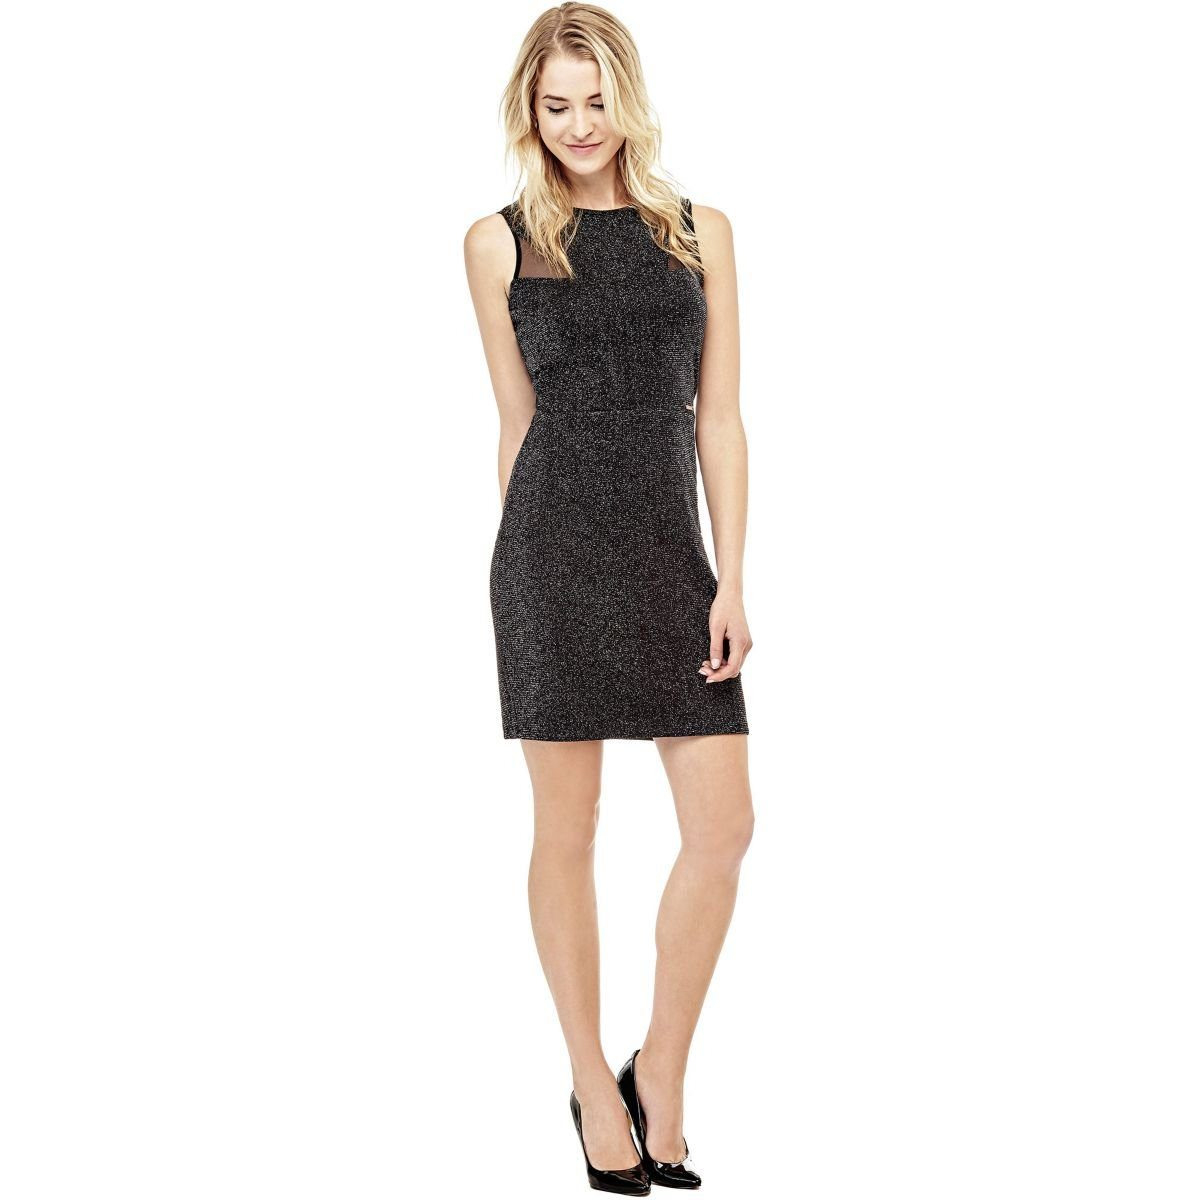 20 Kreativ Guess Abend Kleid Galerie10 Cool Guess Abend Kleid Boutique